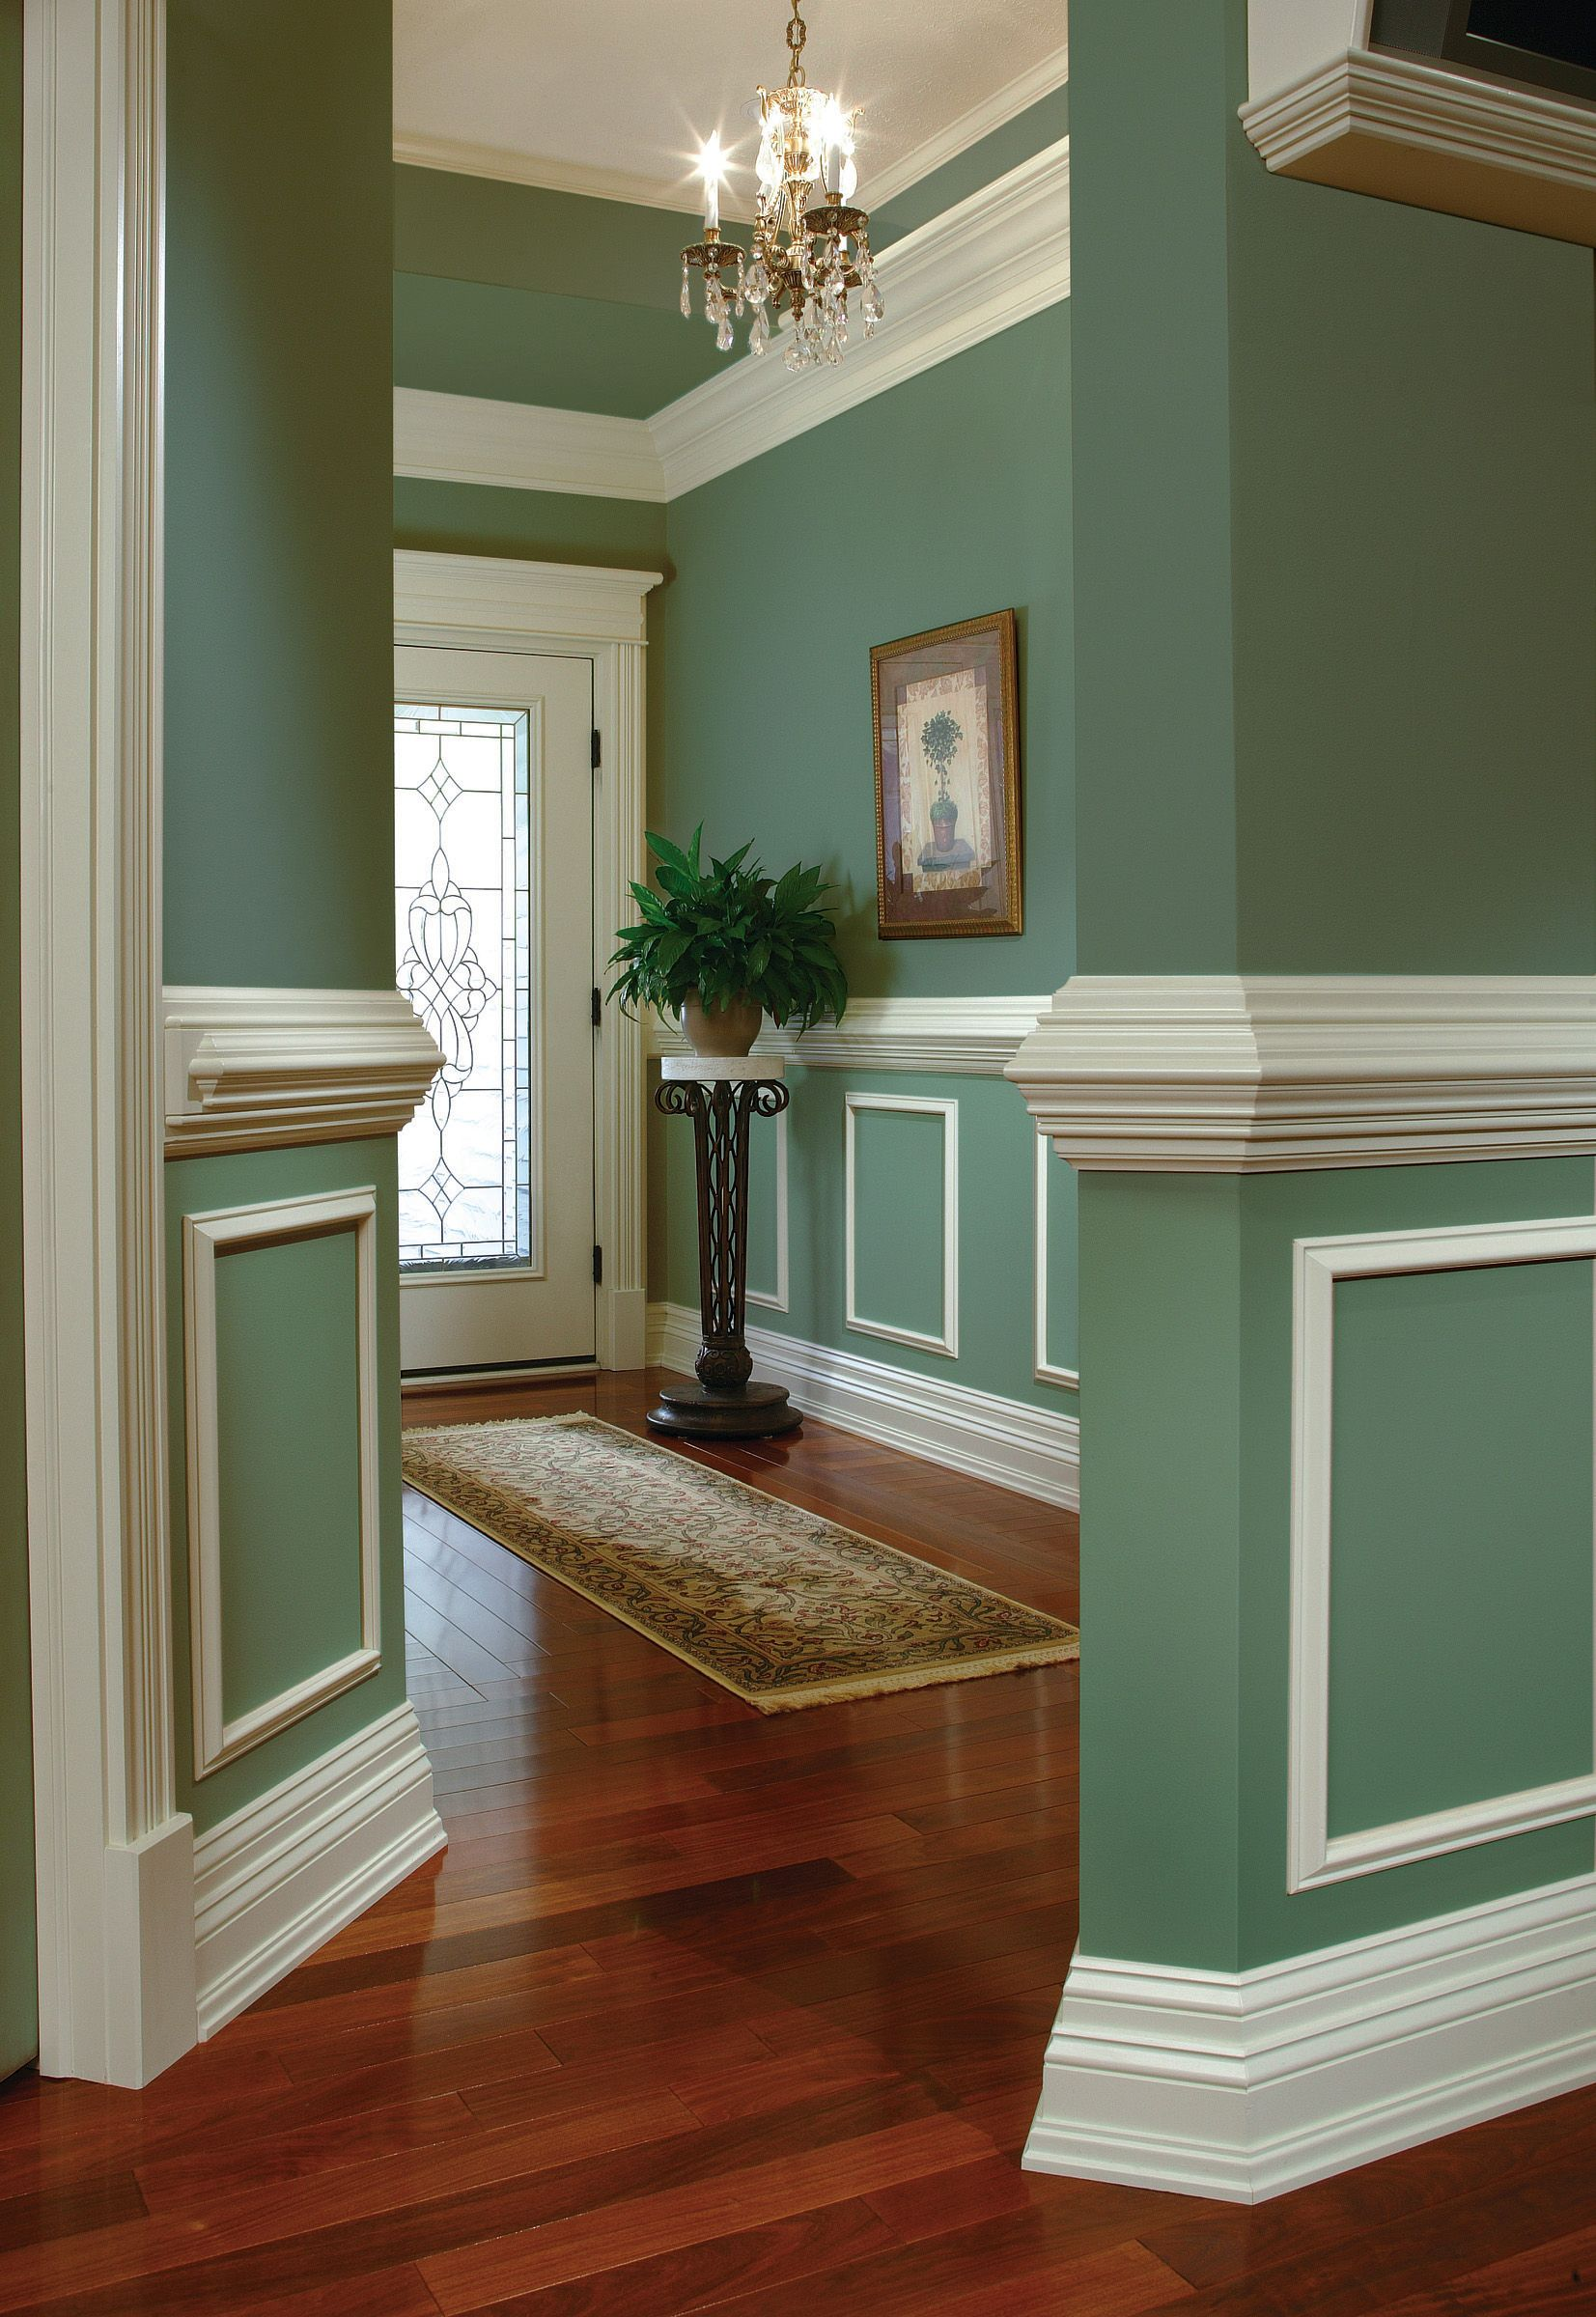 Wood Chair Rail Ideas Part - 27: Practical And Decorative, A Chair Rail Adds Elegance To Any Room.